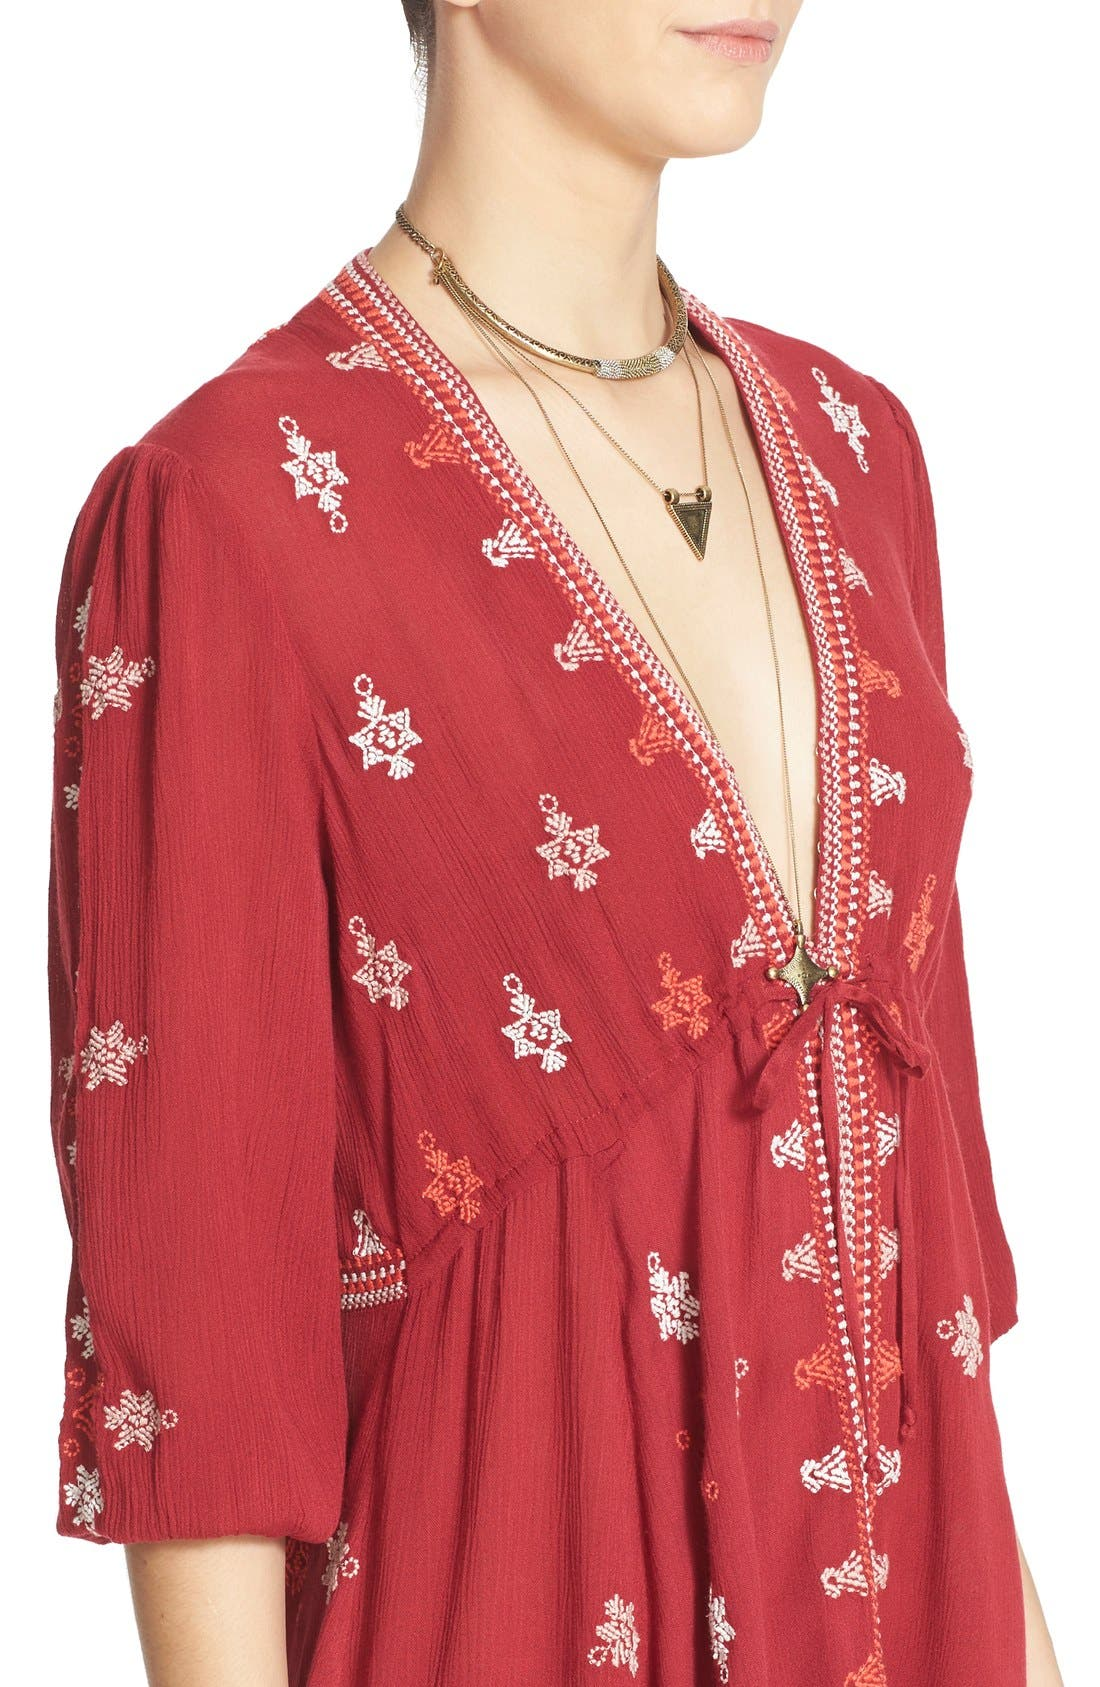 'Star Gazer' Embroidered Tunic Dress,                             Alternate thumbnail 5, color,                             Red Combo